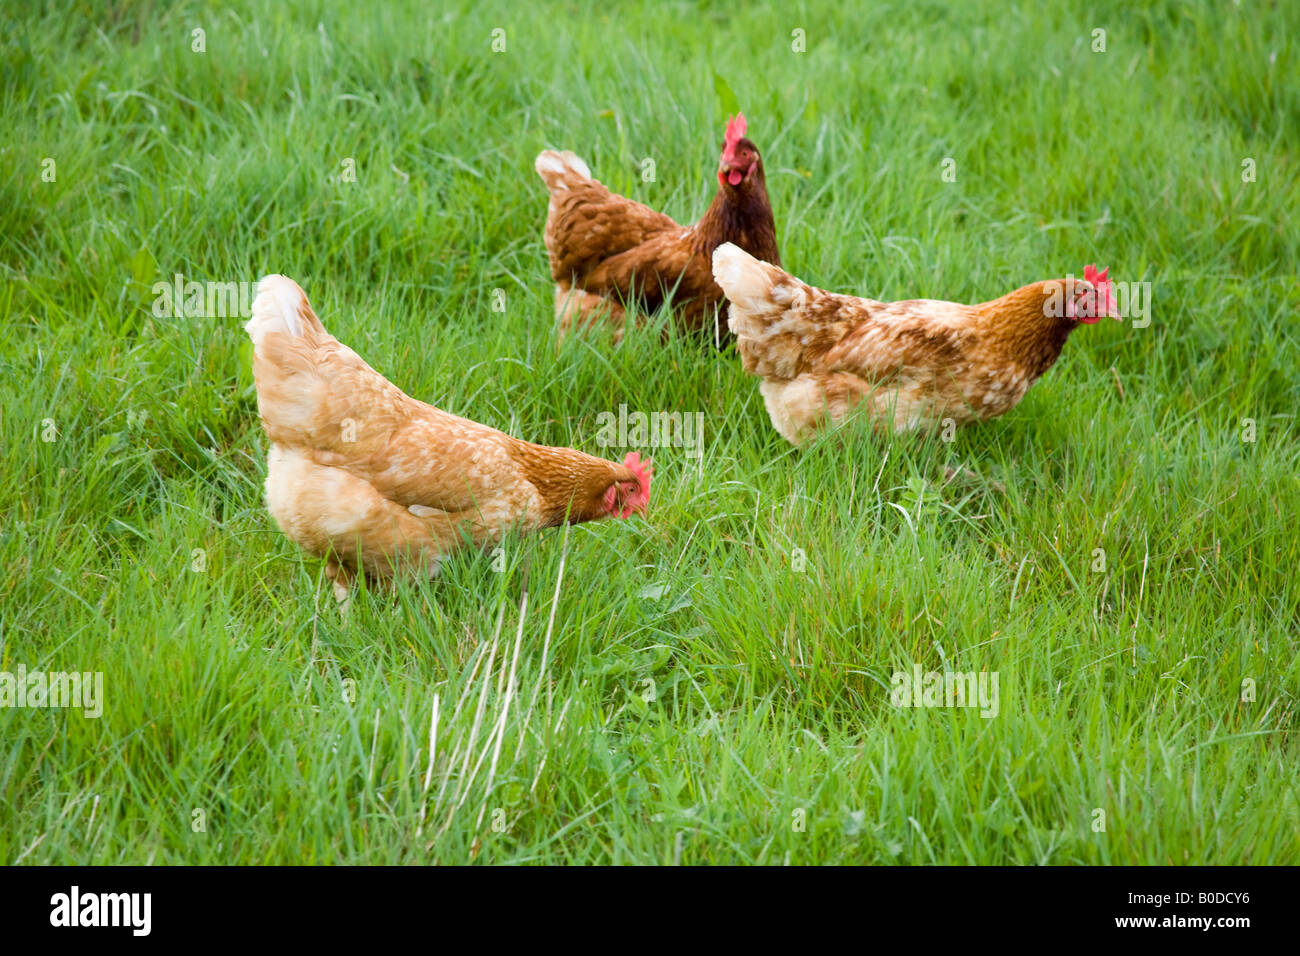 Freerange organic chickens Hampshire England - Stock Image